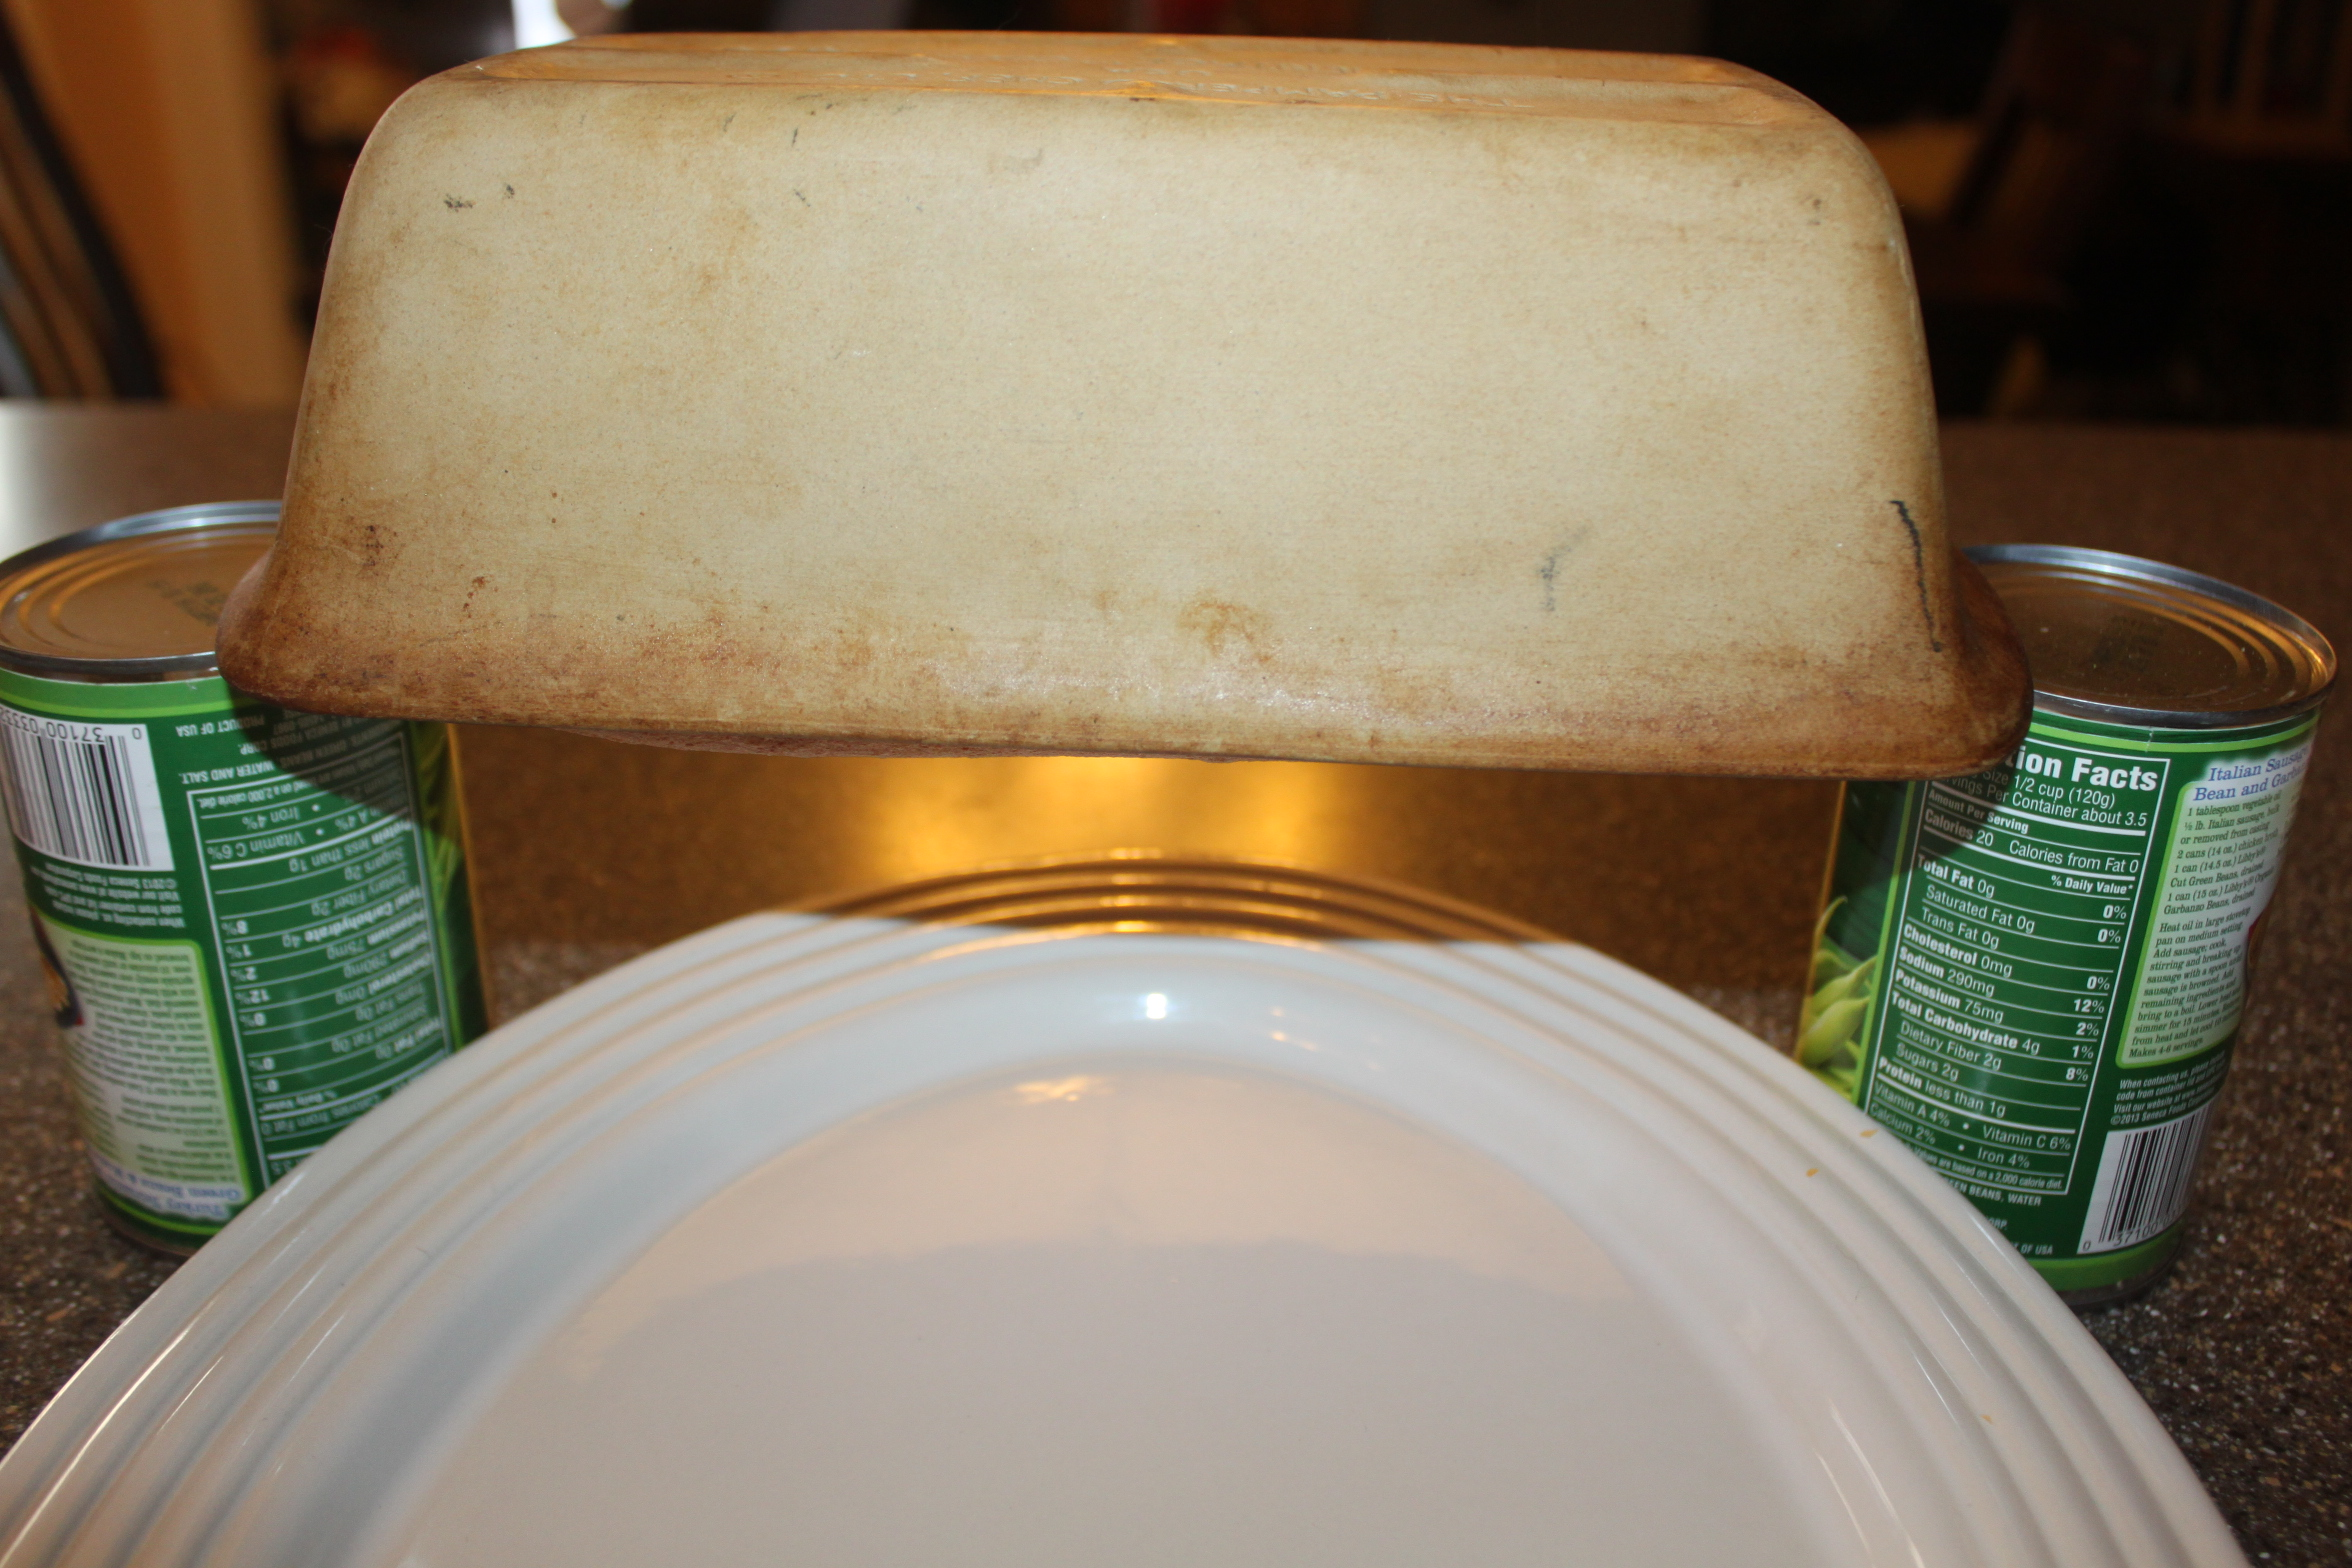 Angel Food Cake Recipe Perfectly Sized For A Loaf Pan